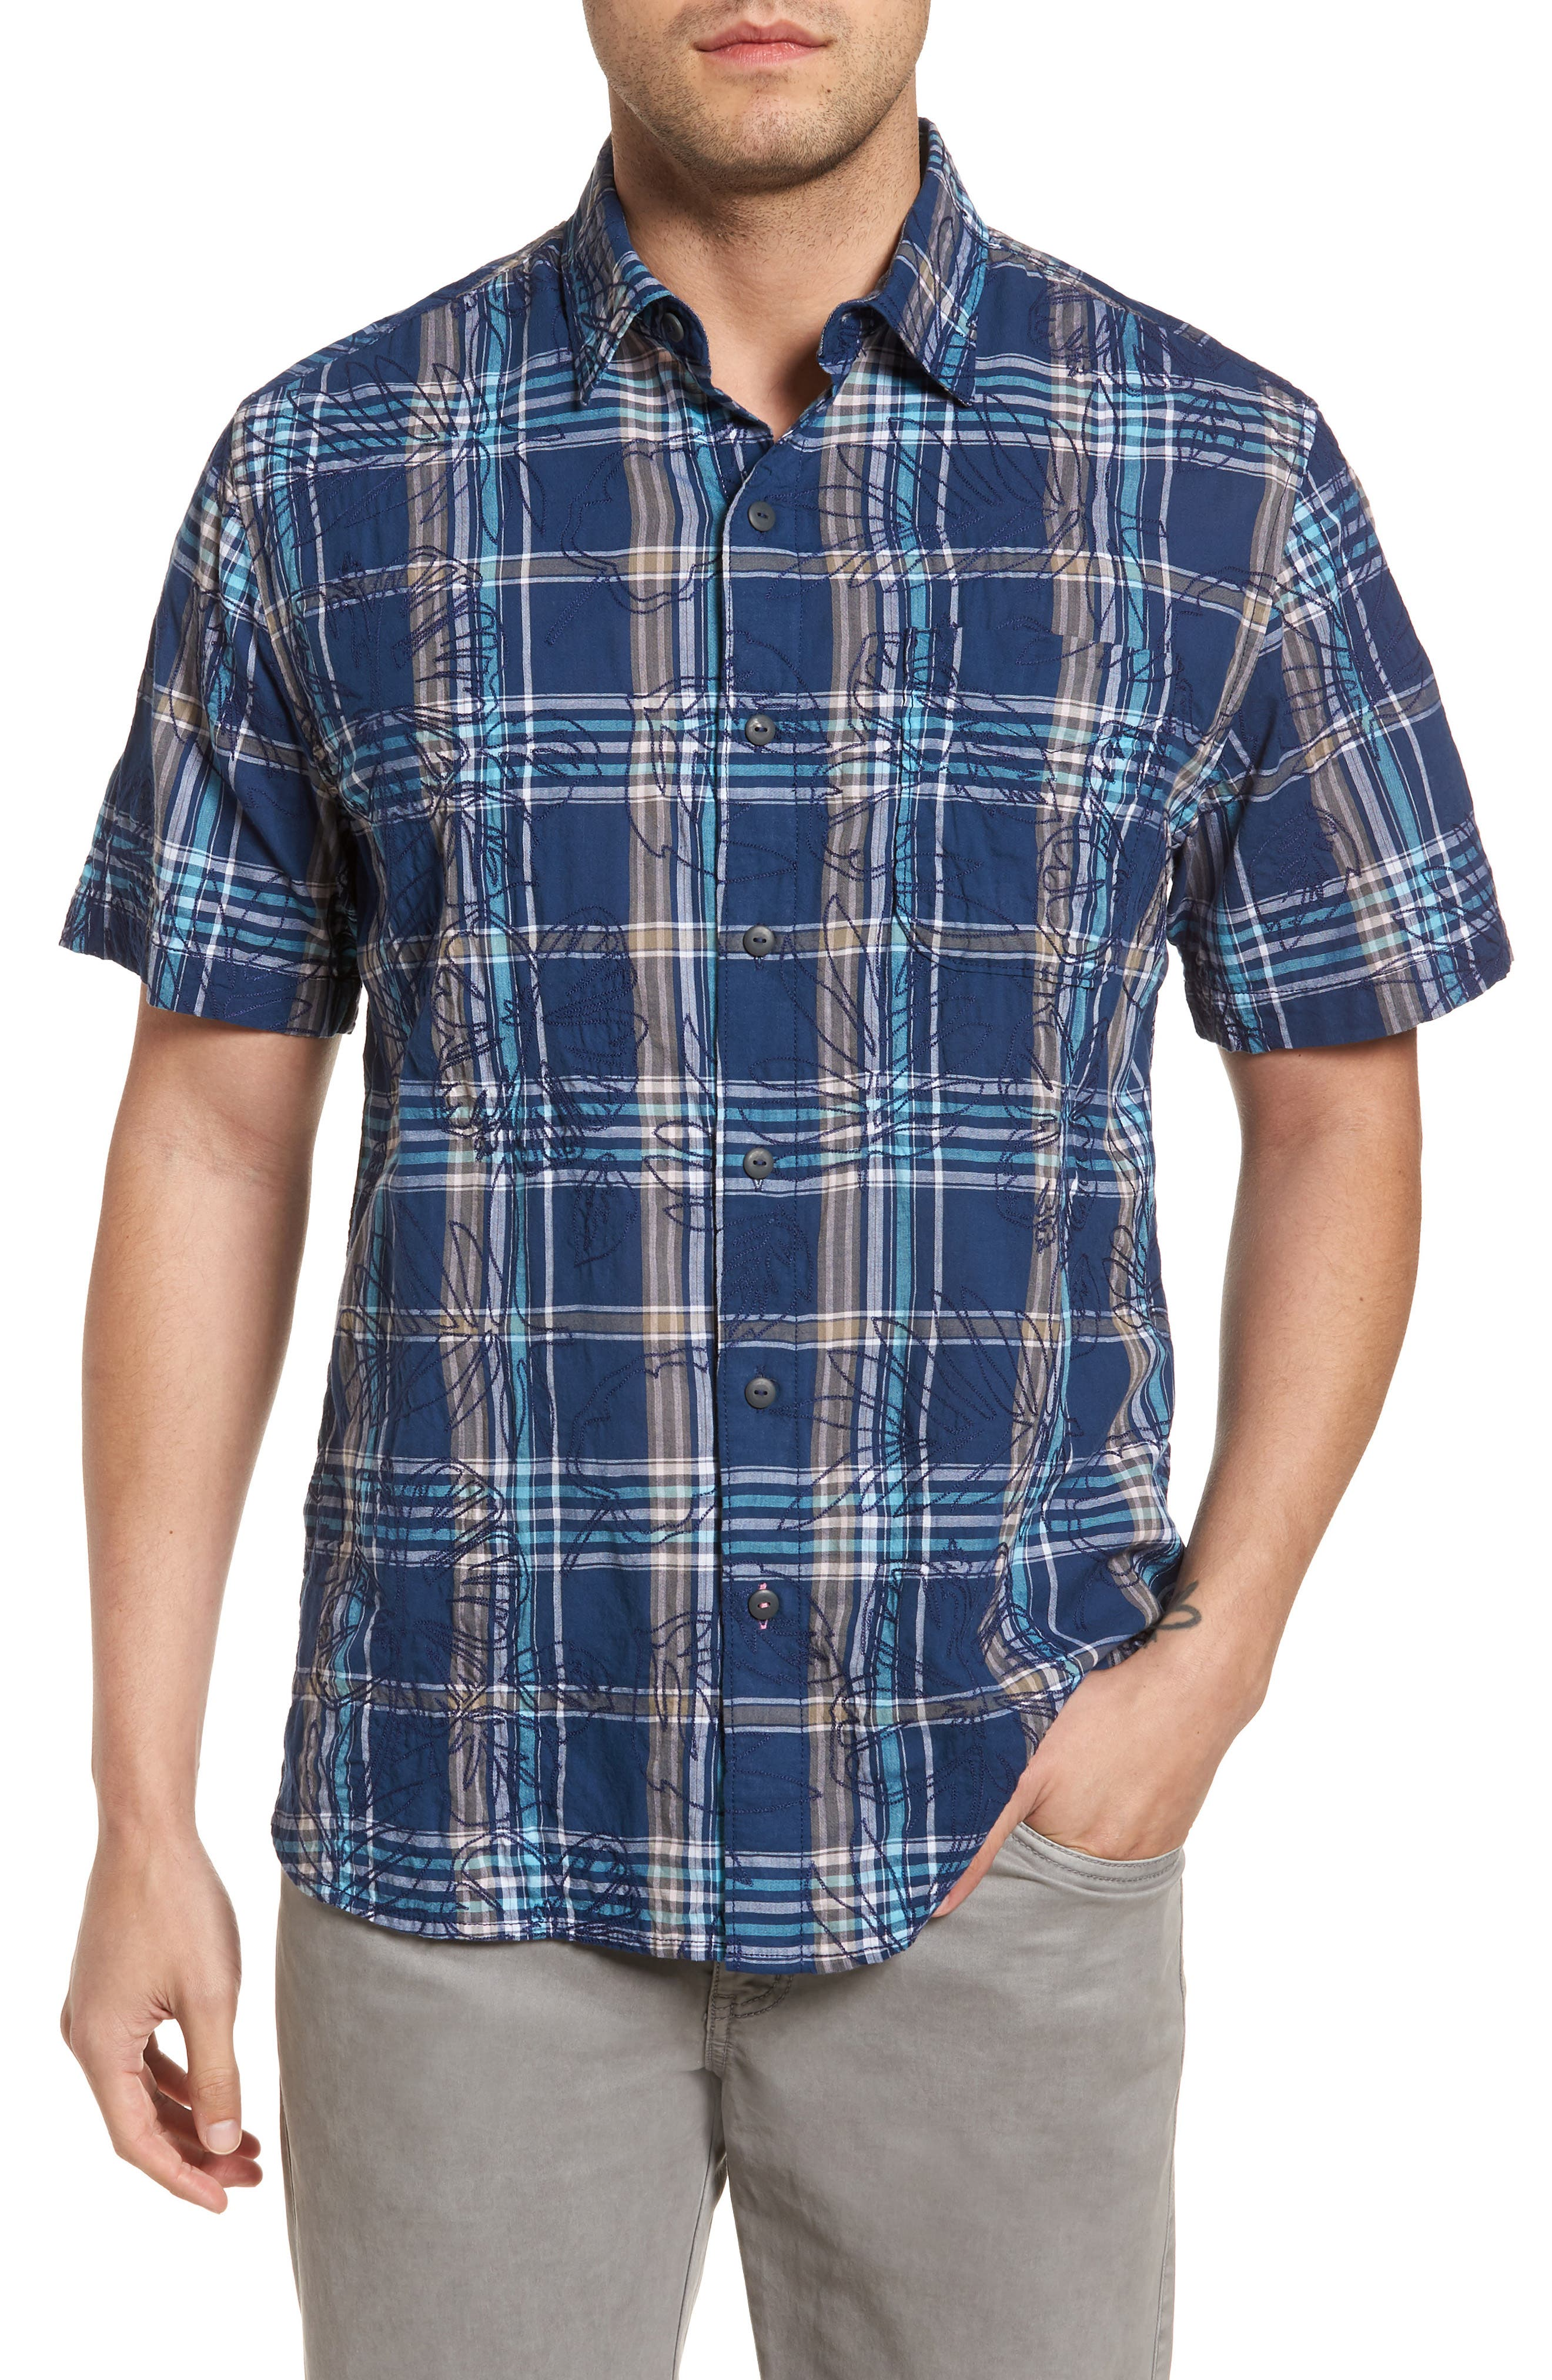 Palazzo Regular Fit Plaid Sport Shirt,                             Main thumbnail 1, color,                             400